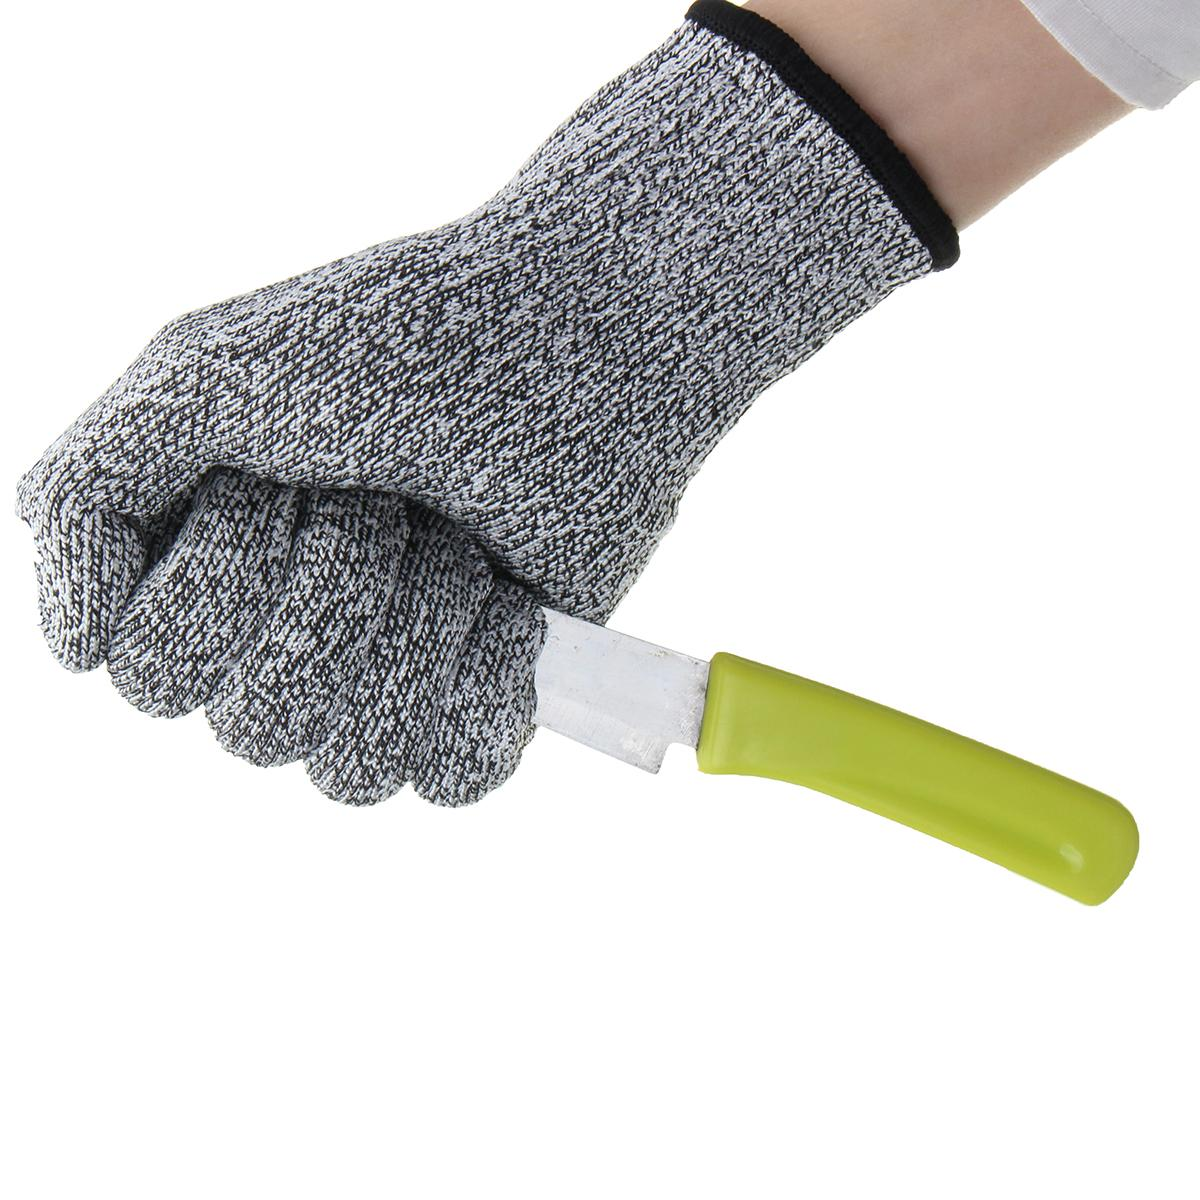 Safurance Anti-Cutting Cut Resistant Gloves Food Grade Kitchen Butcher Protection -Level 5 Workplace Safety safurance black safety cut stab resistant stainless steel wire metal mesh butcher gloves cut resistant safety gloves